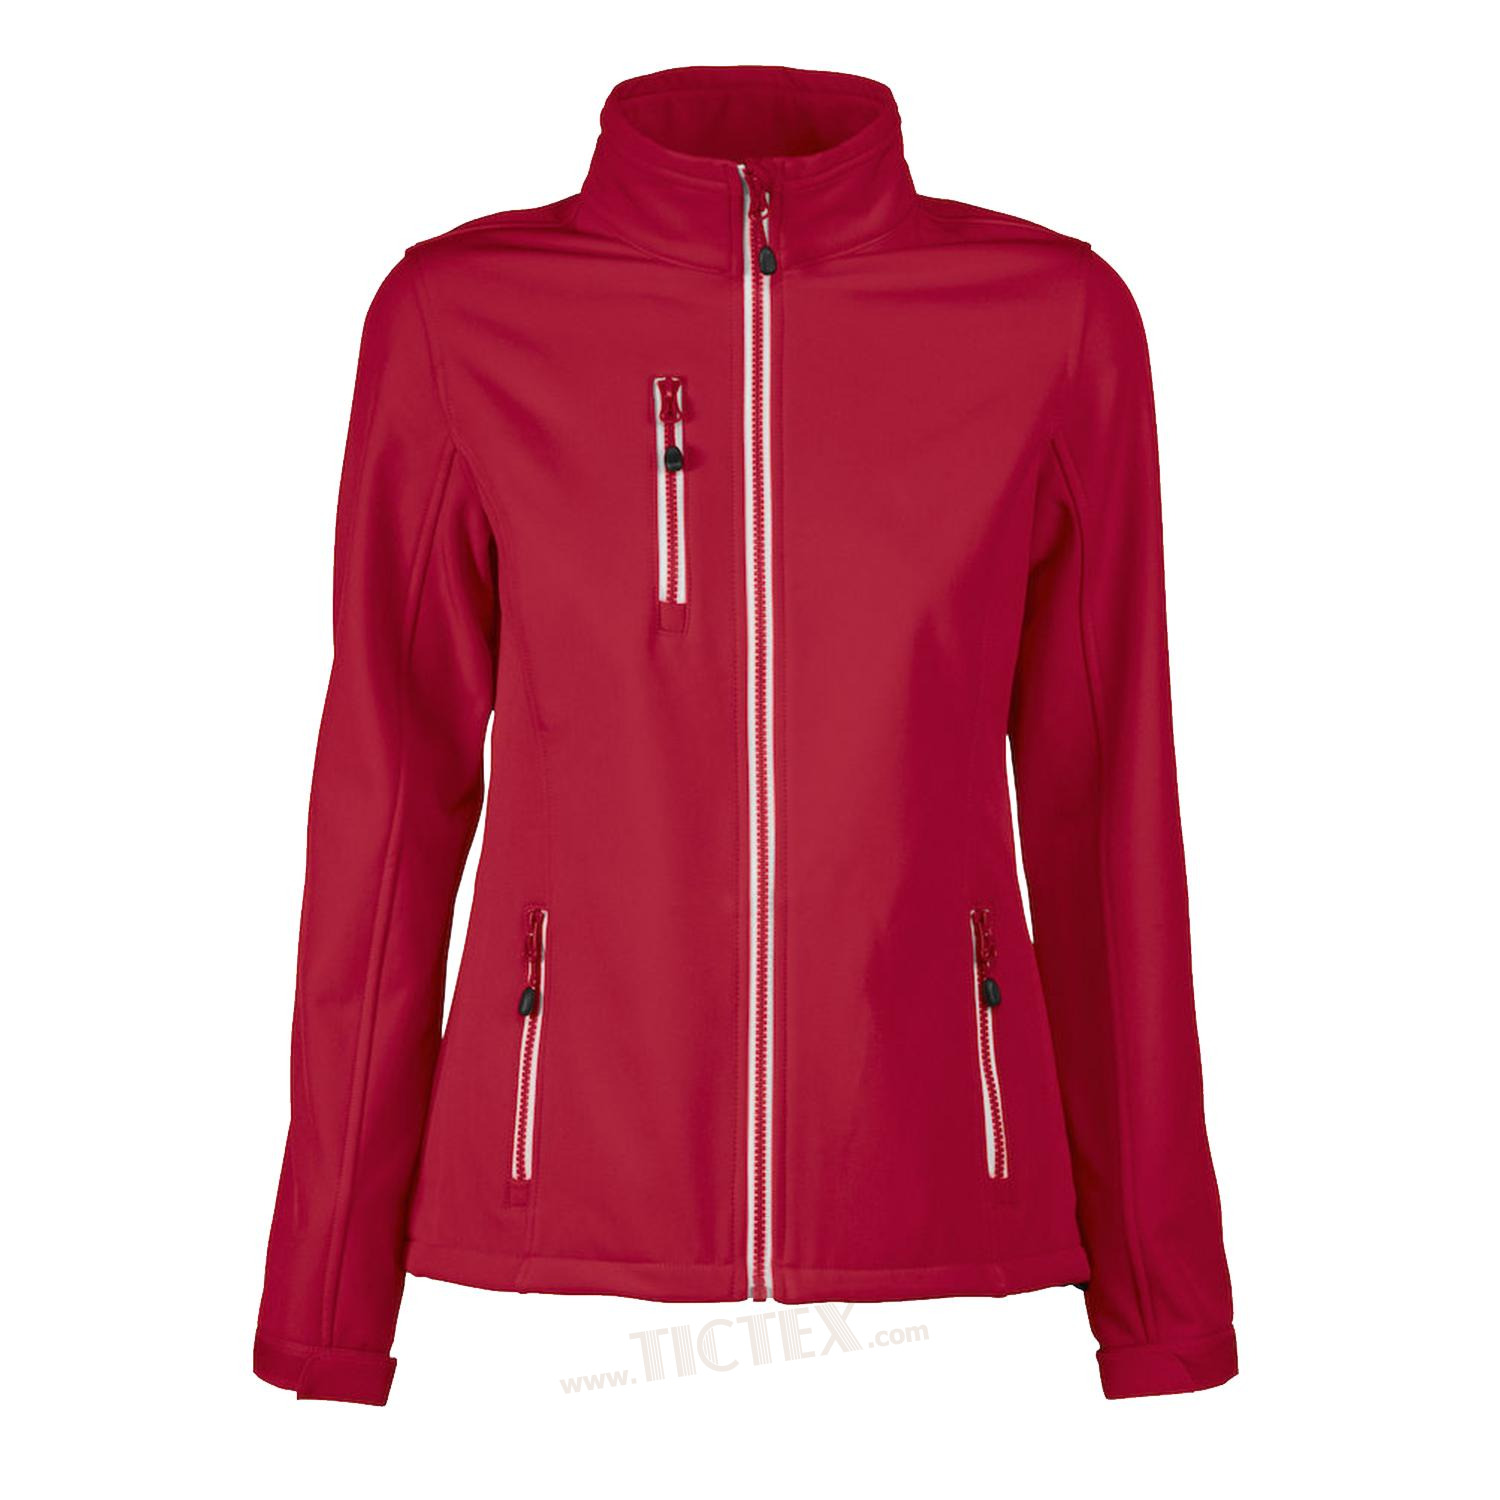 'Shell Ladies ' Host Jacket' Ladies Stampante qwgB576